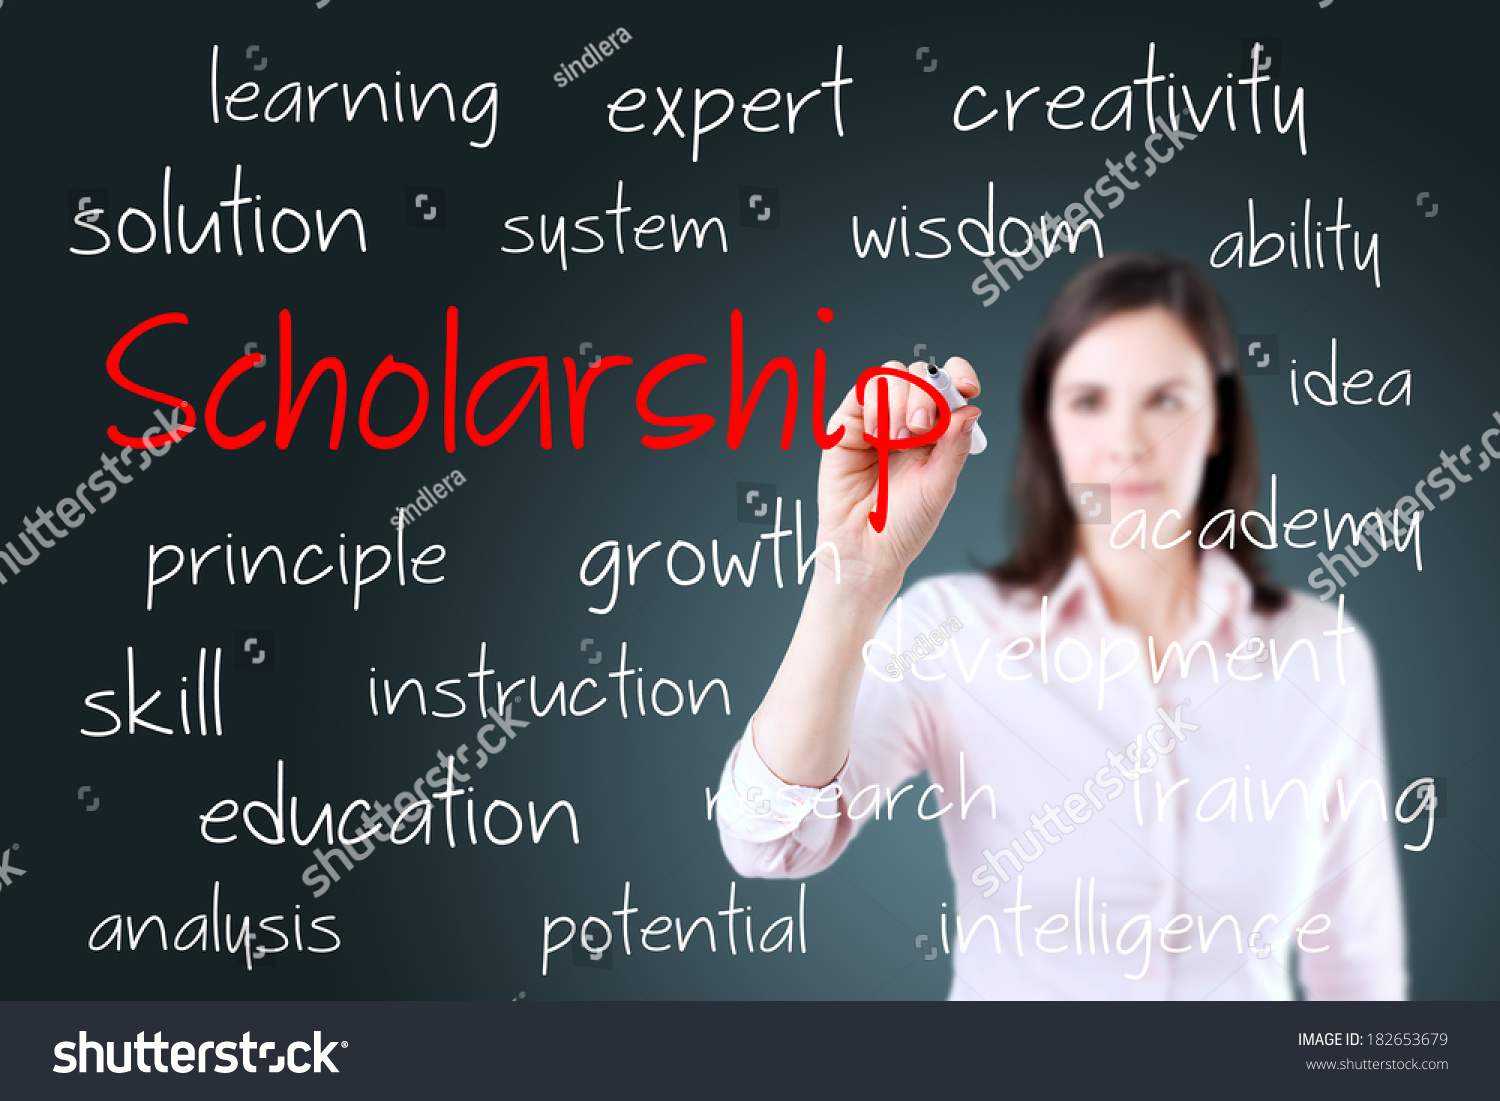 women in business scholarship essay Scholarships are funds awarded based on a variety of criteria such as academic  merit, financial need, leadership, and service scholarships.